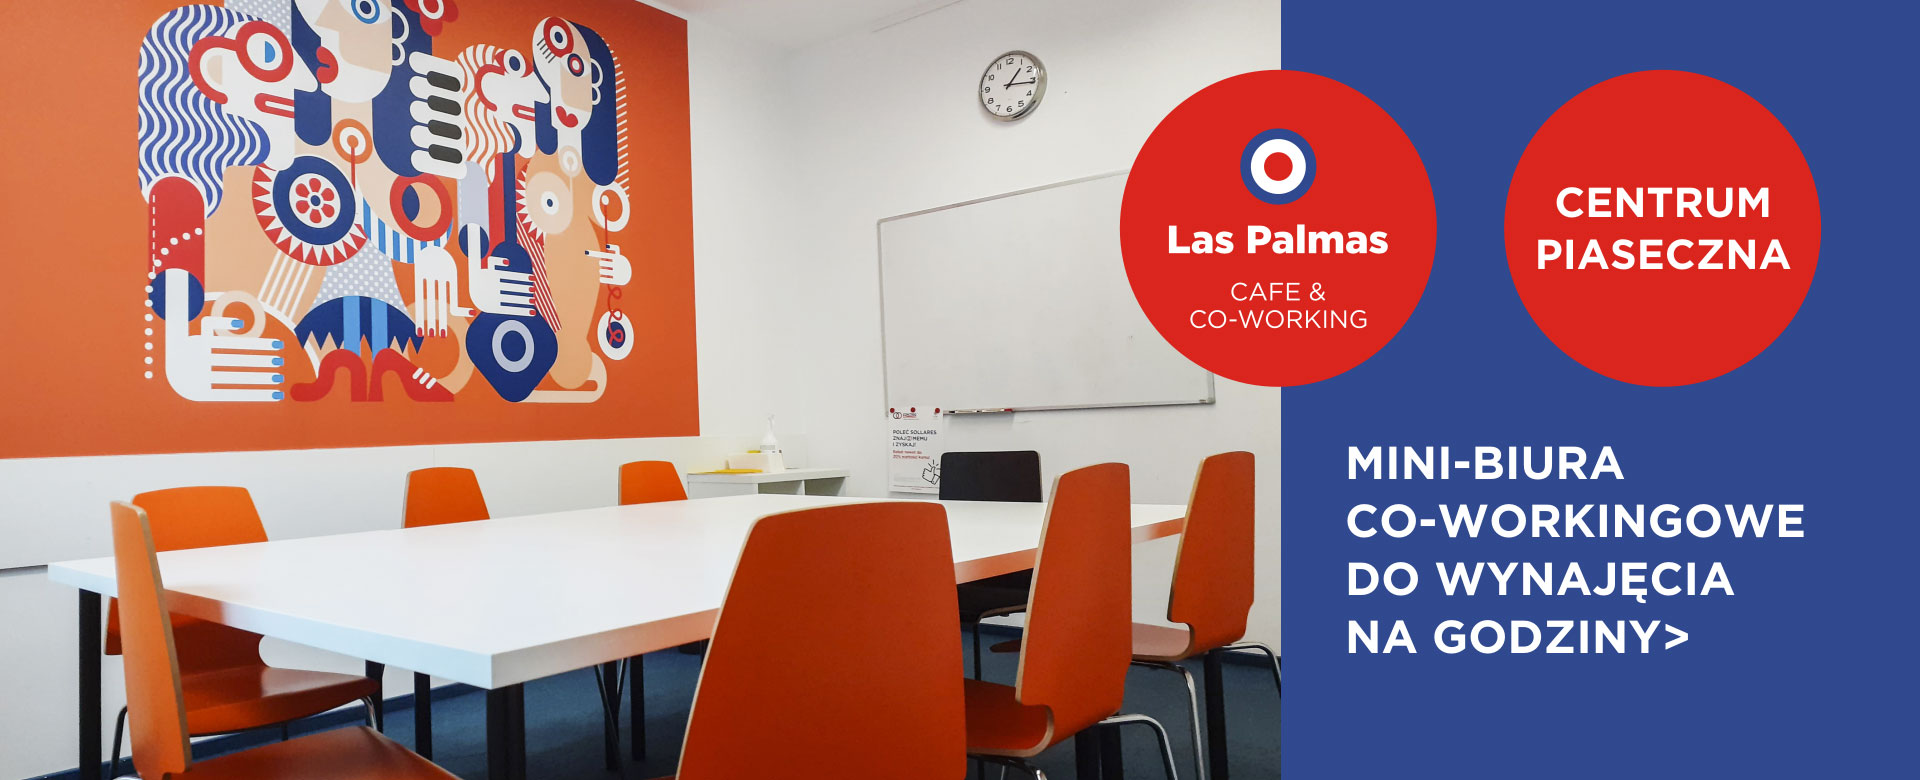 Las-Palmas-newsletter-co-working-do-wynajecia-TOP_ok